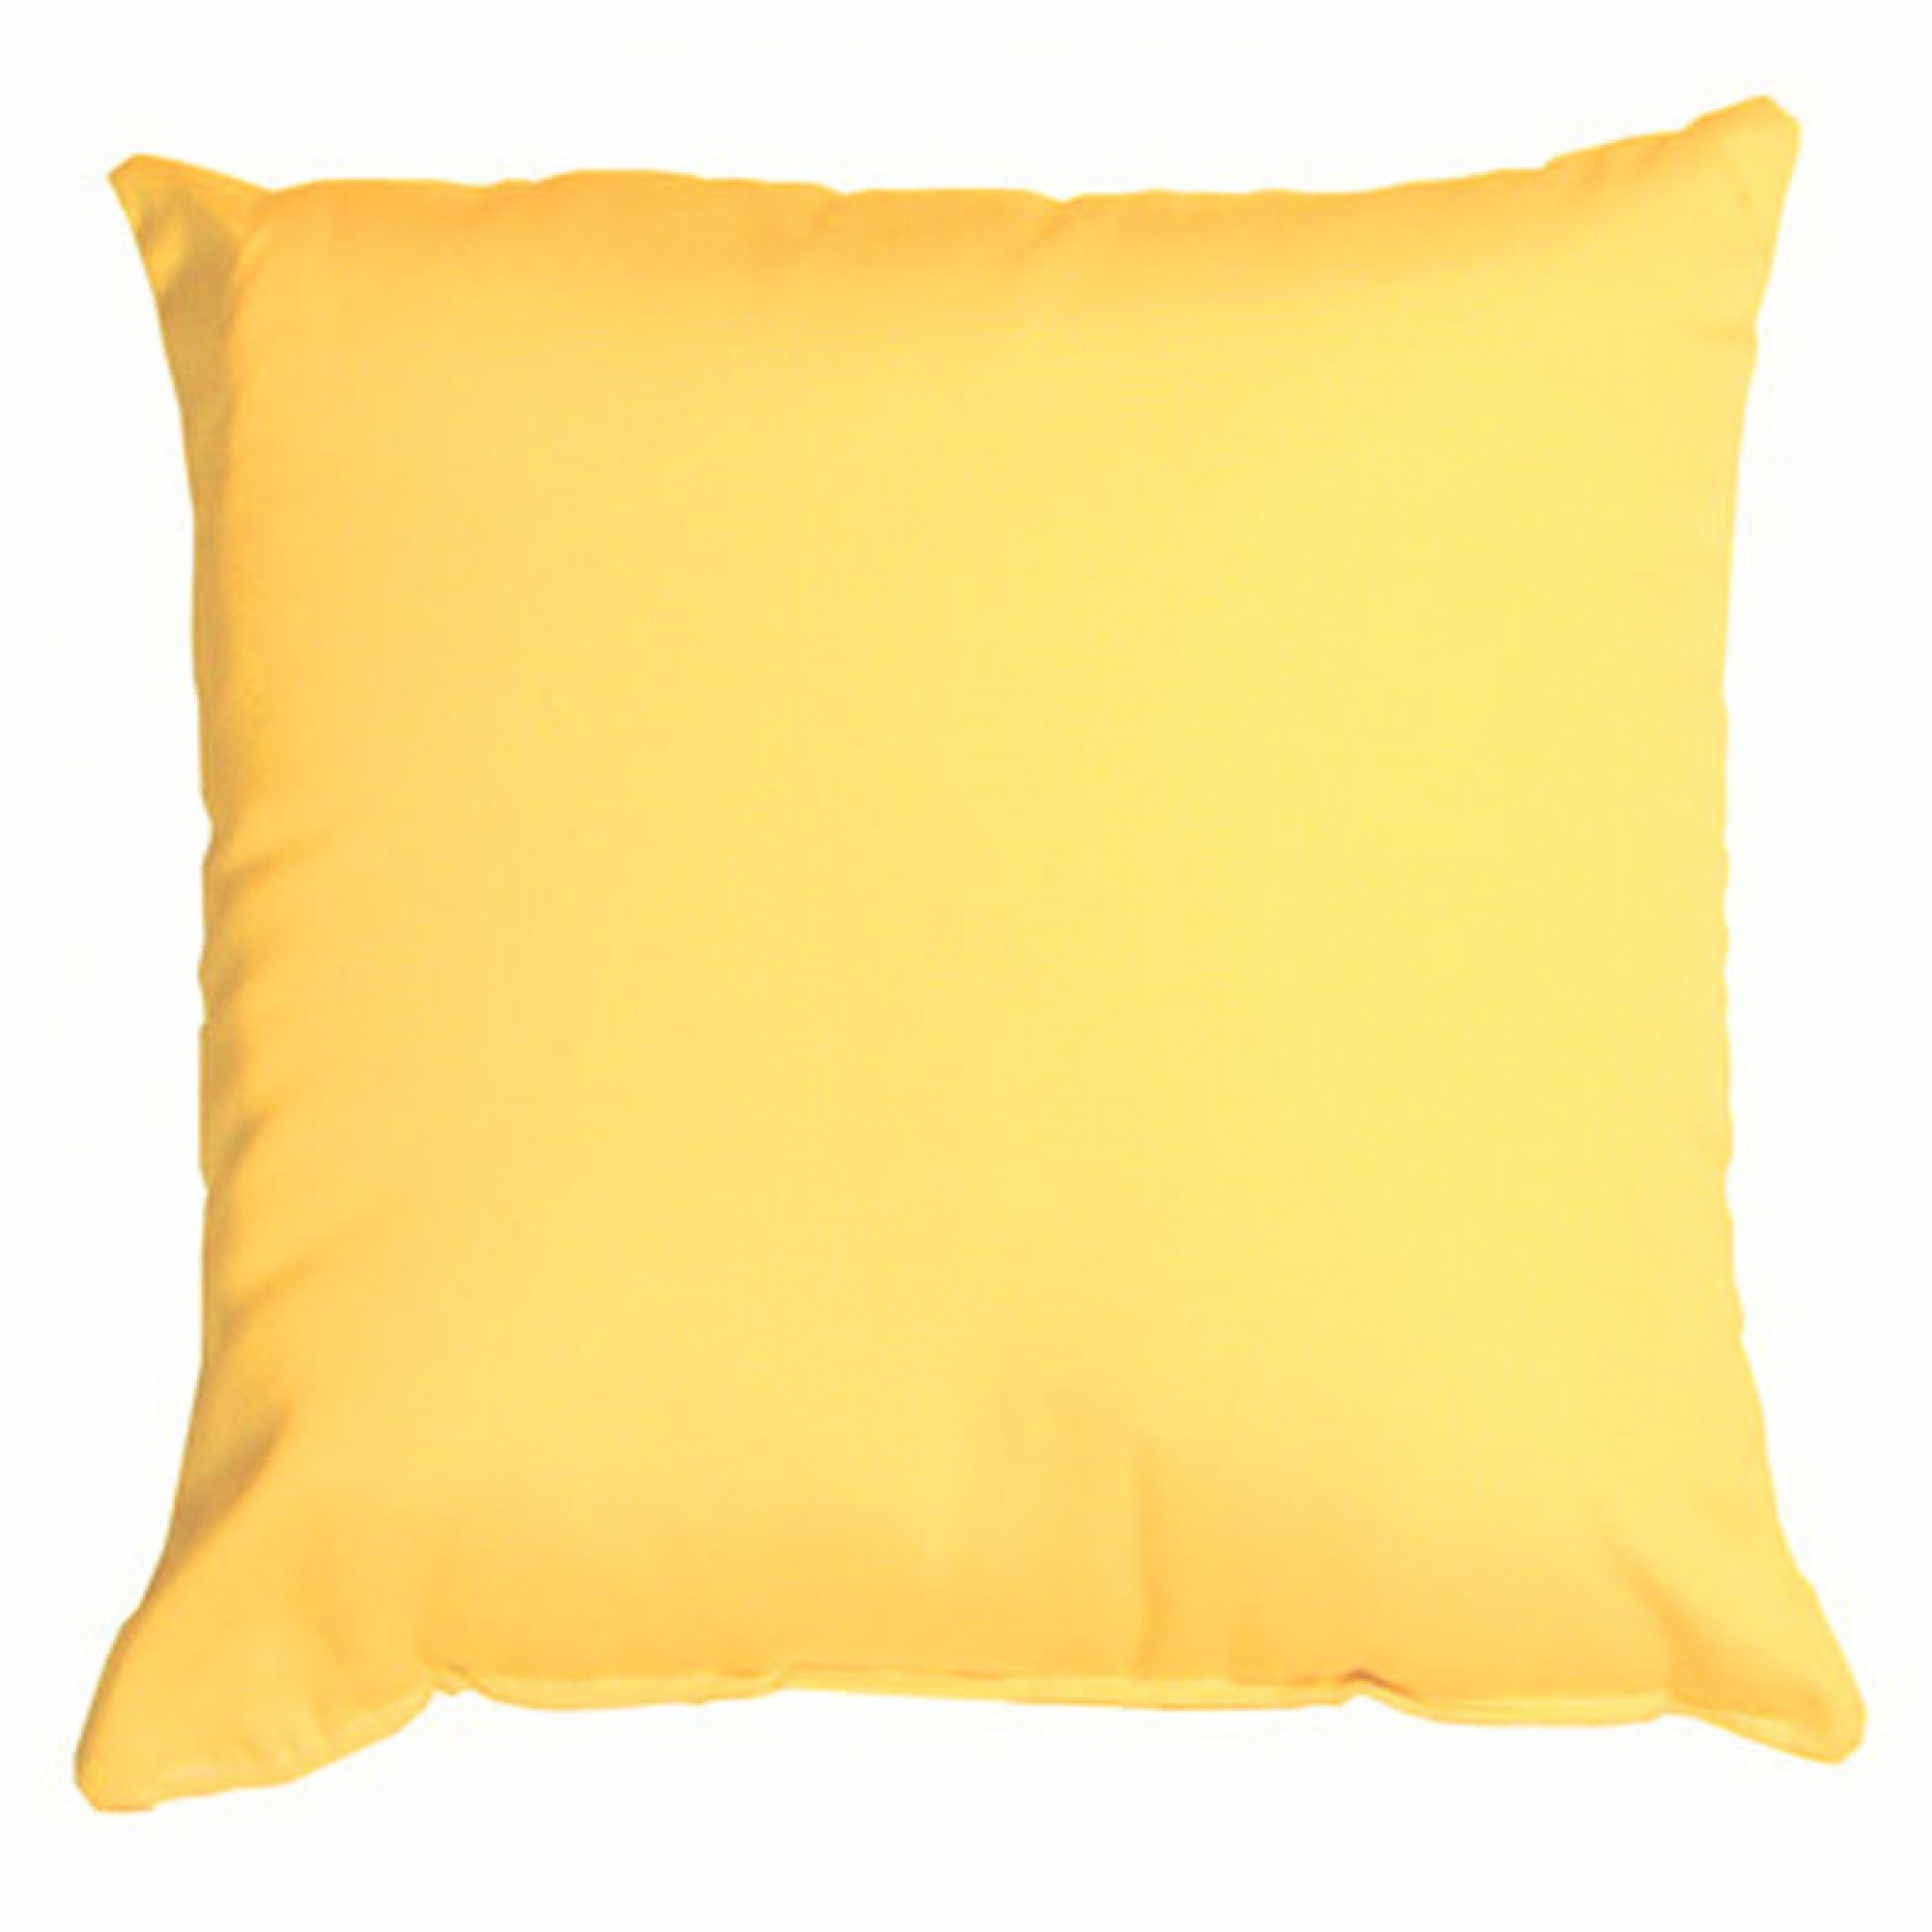 Yellow Love Throw Pillow : Shop Throw Pillow - Yellow - Essentials by DFO; Pillows; Outdoors dfohome.com DFOHome